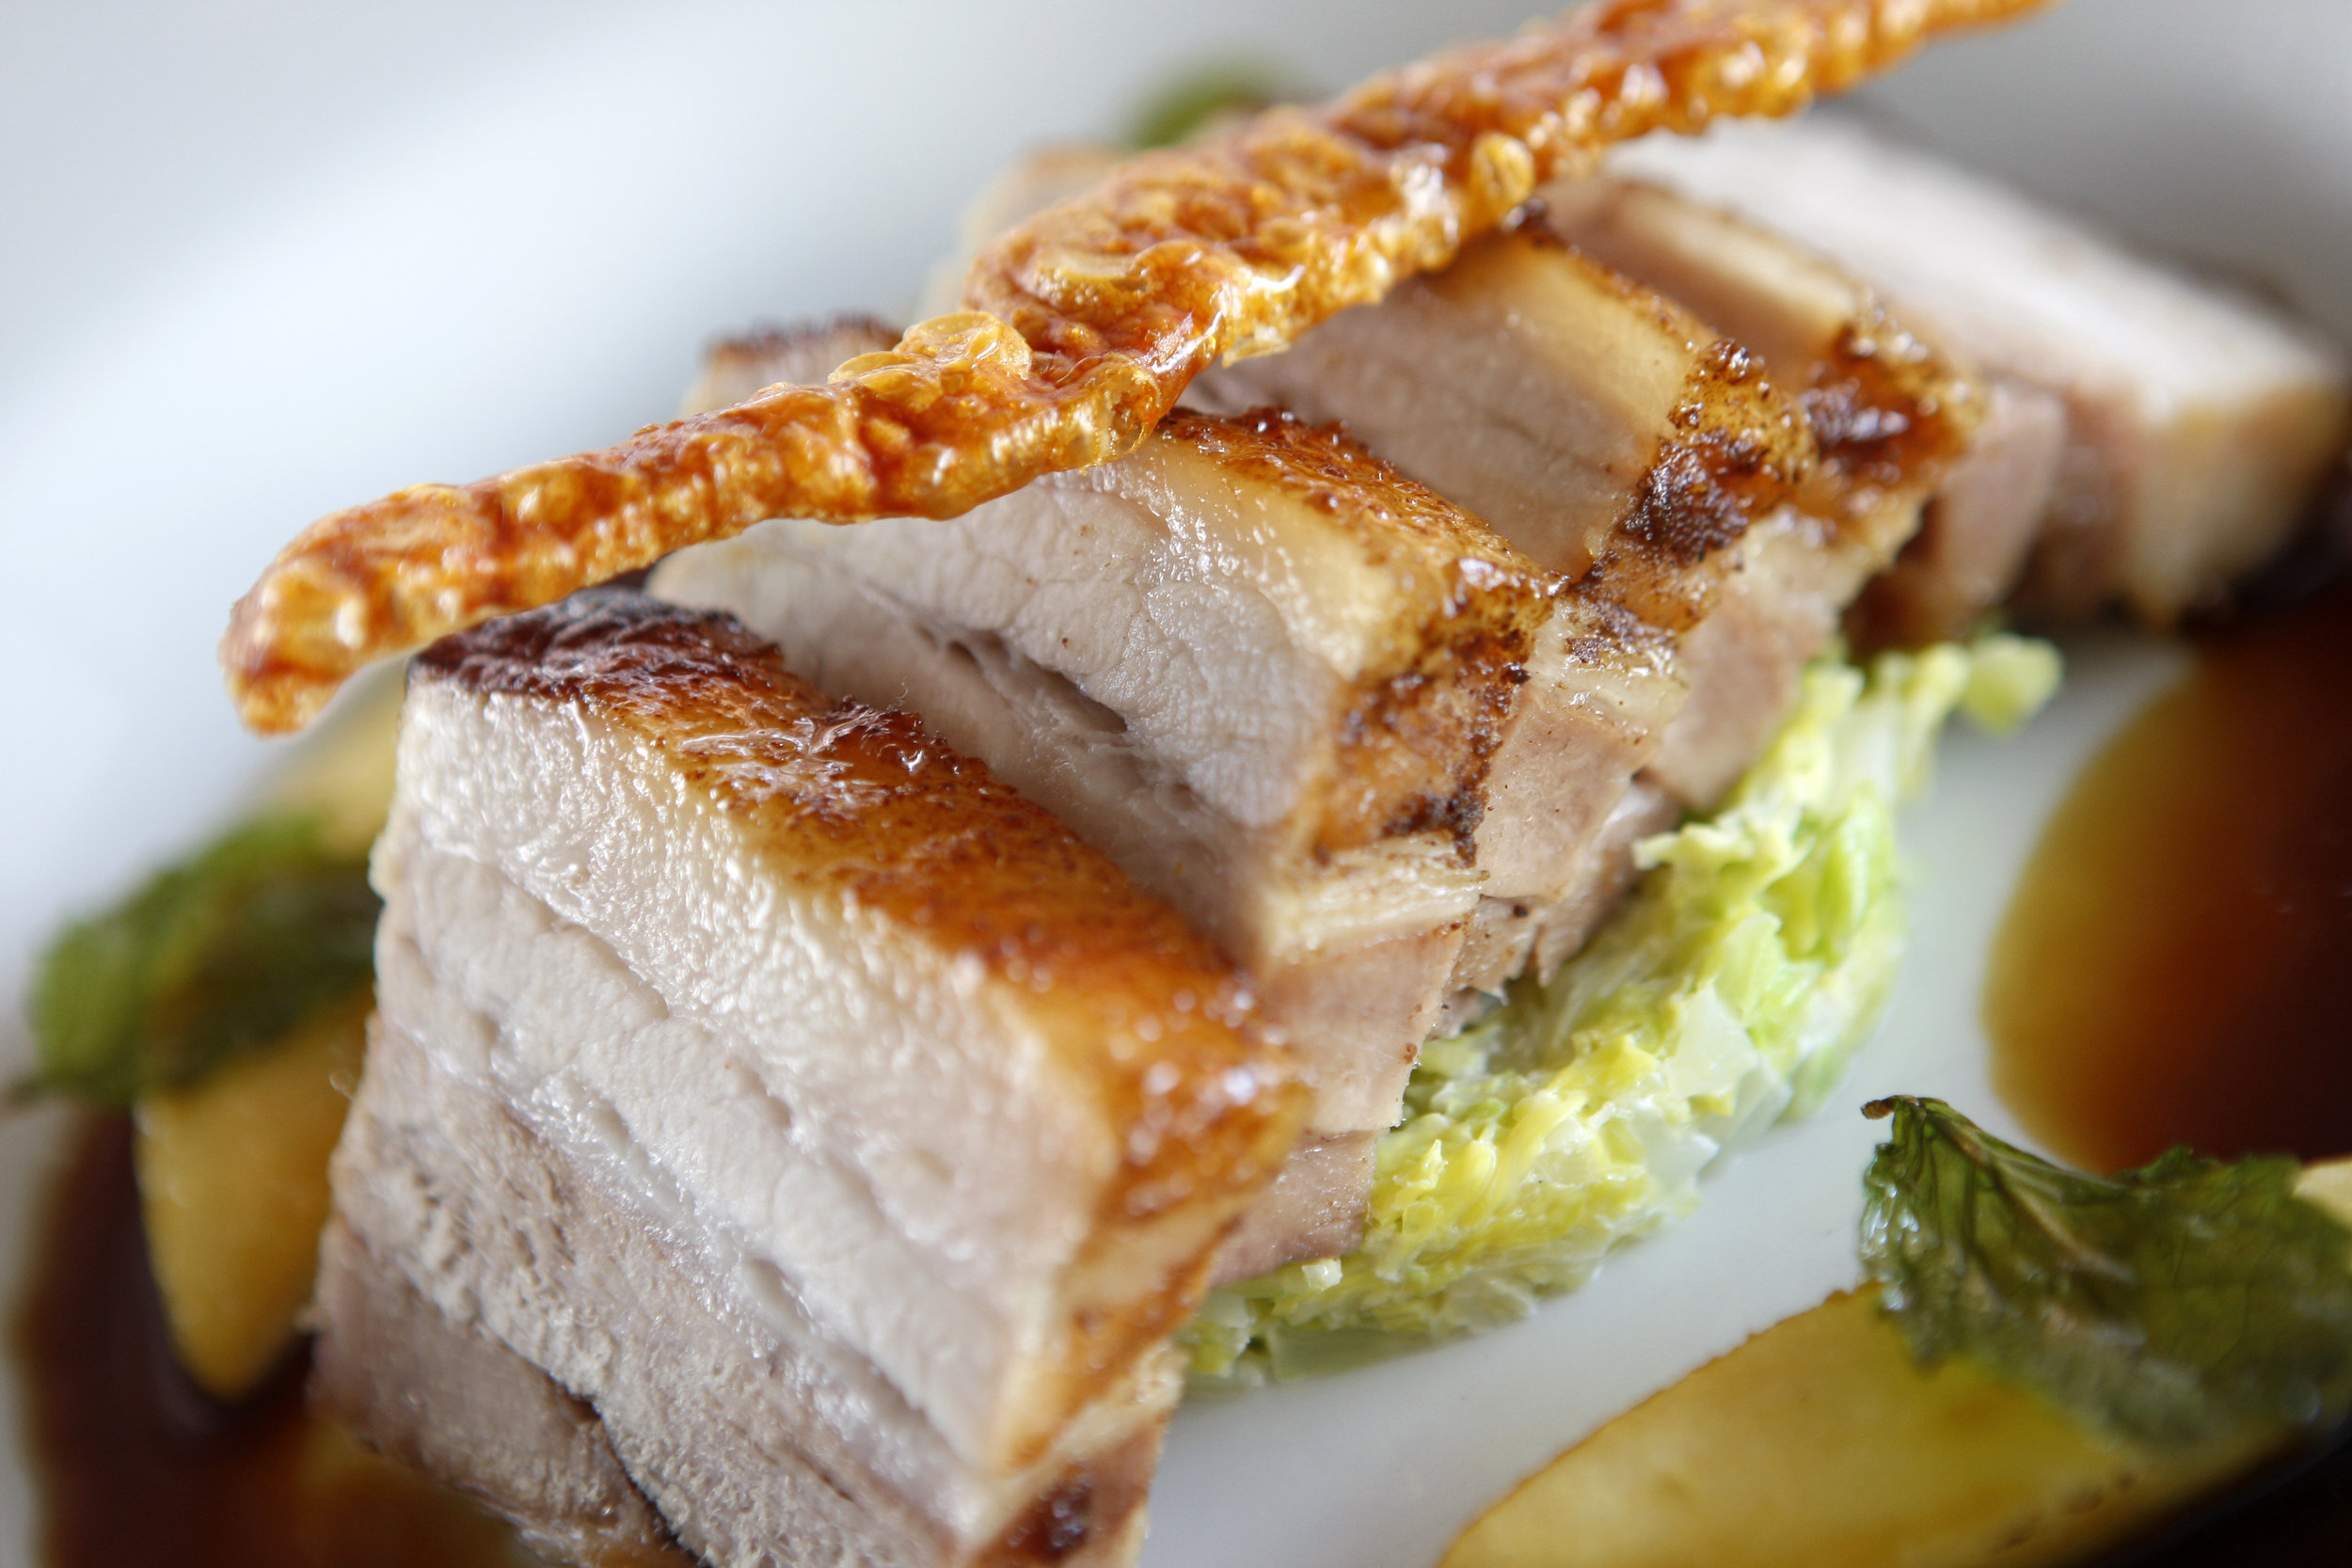 Succulent Pork Belly....Available on the Twelve Celebration Menu!